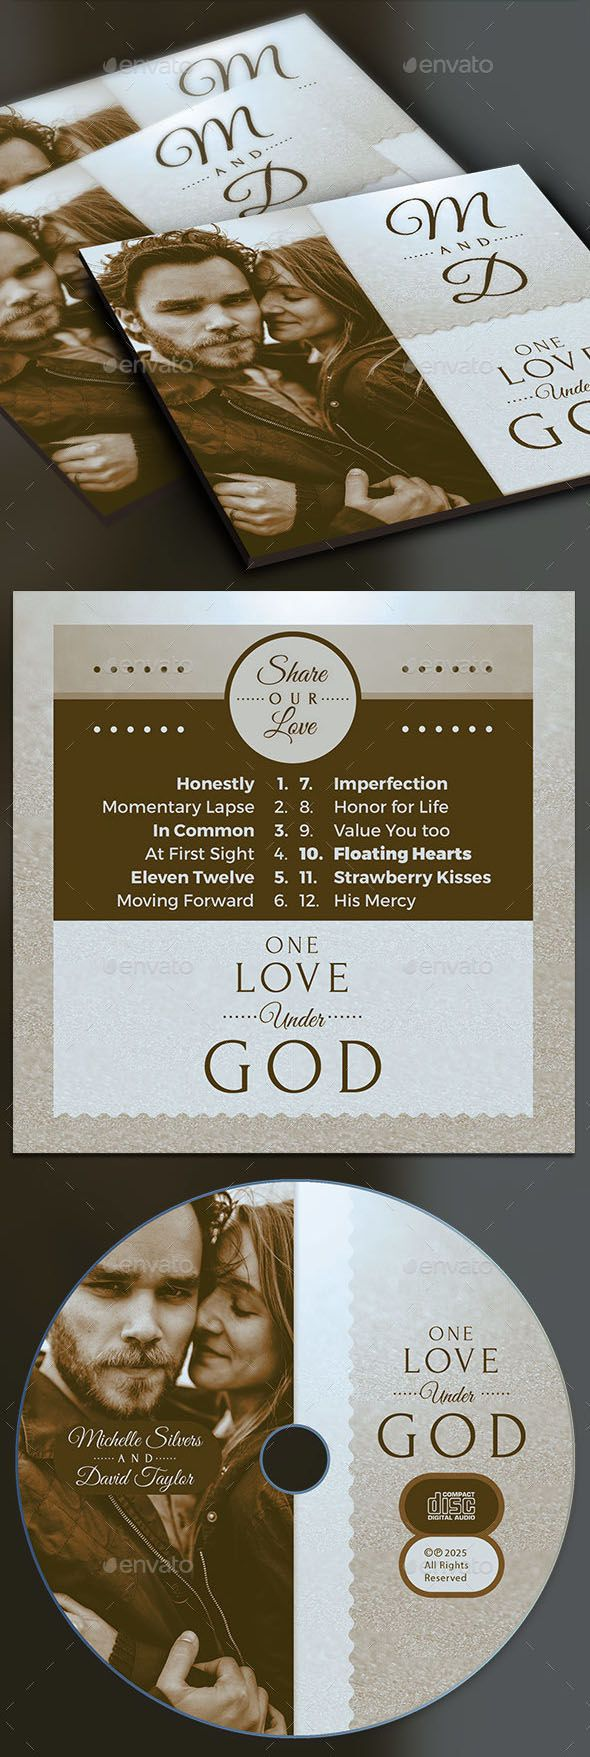 004 Beautiful Wedding Cd Cover Design Template Free Download Example Full